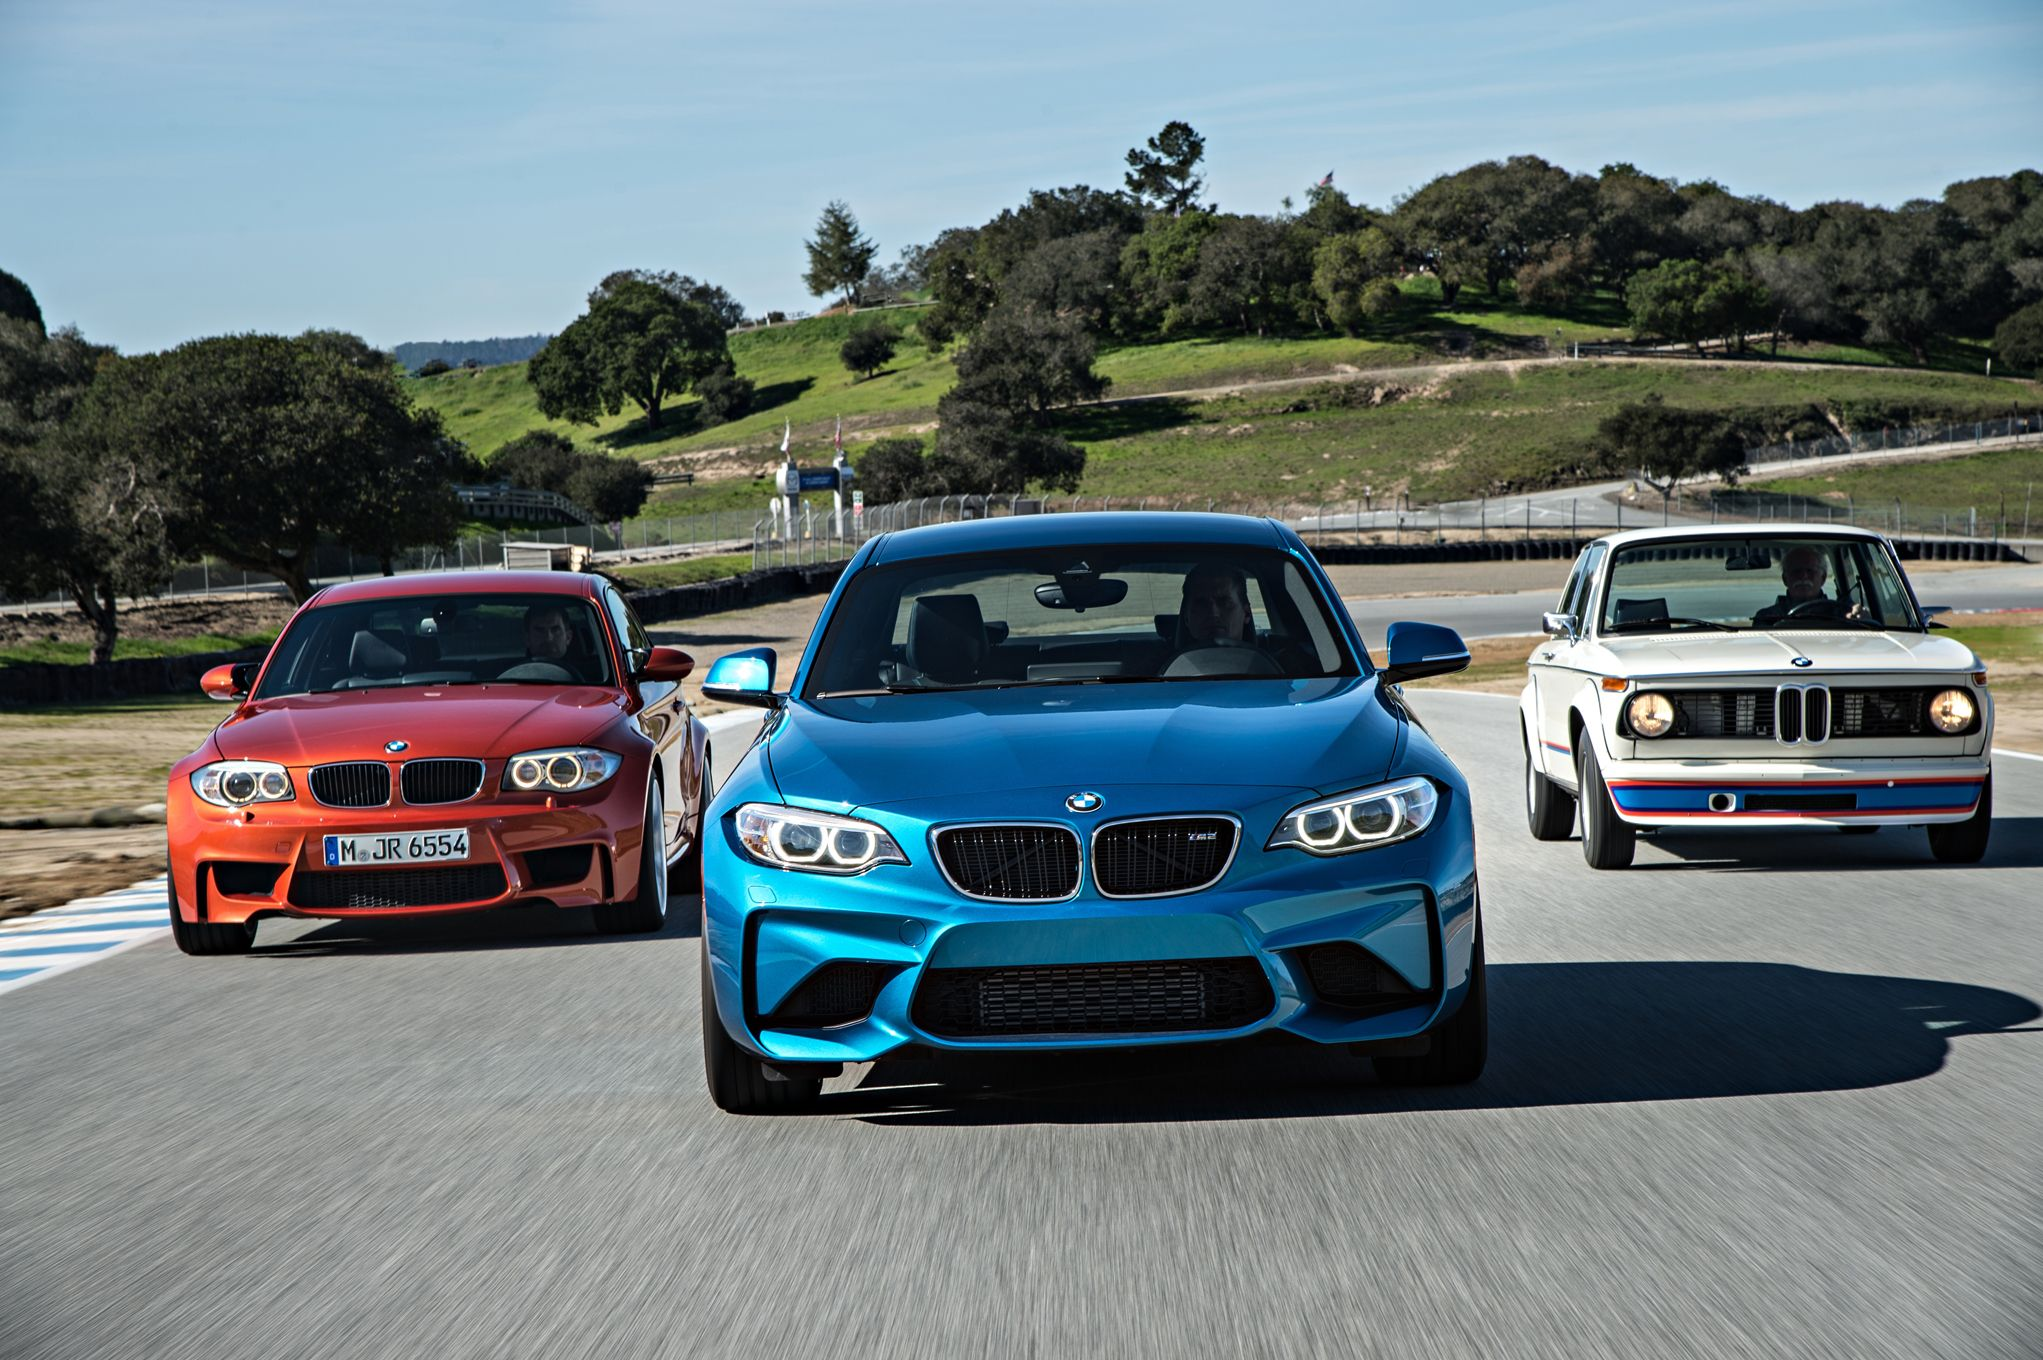 2016-bmw-m2-bmw-2002-turbo-and-bmw-1-series-m-coupe-front-end-02.jpg